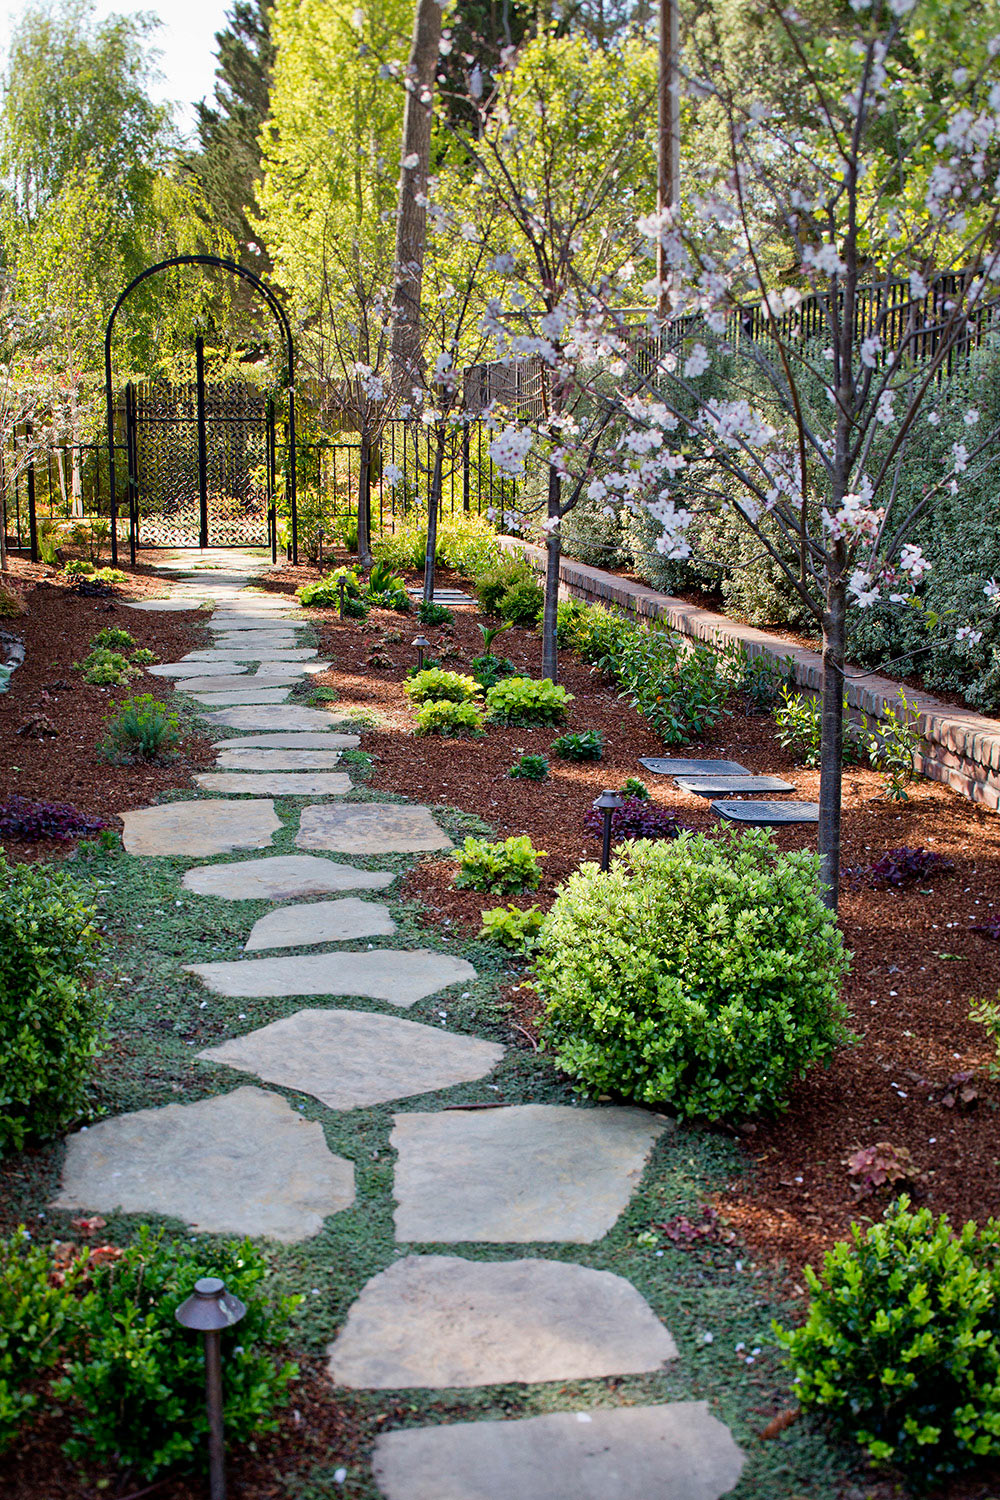 How to plant ground cover between pavers - Image1